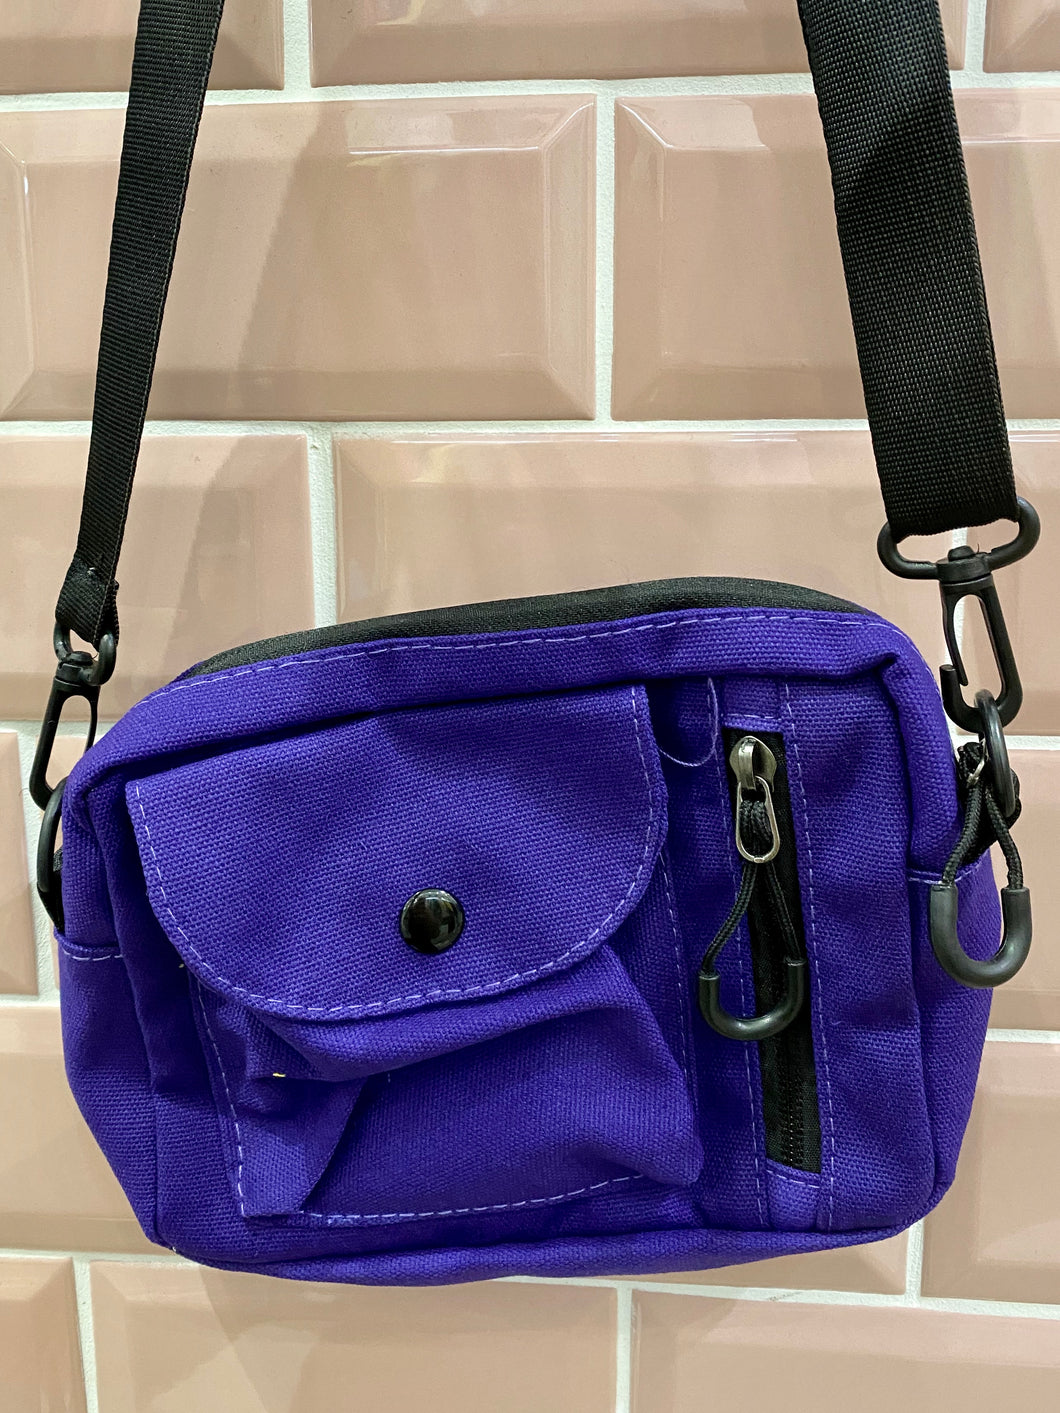 Vintage Inspired Bag Cross Body in Purple with Black Zipper Details